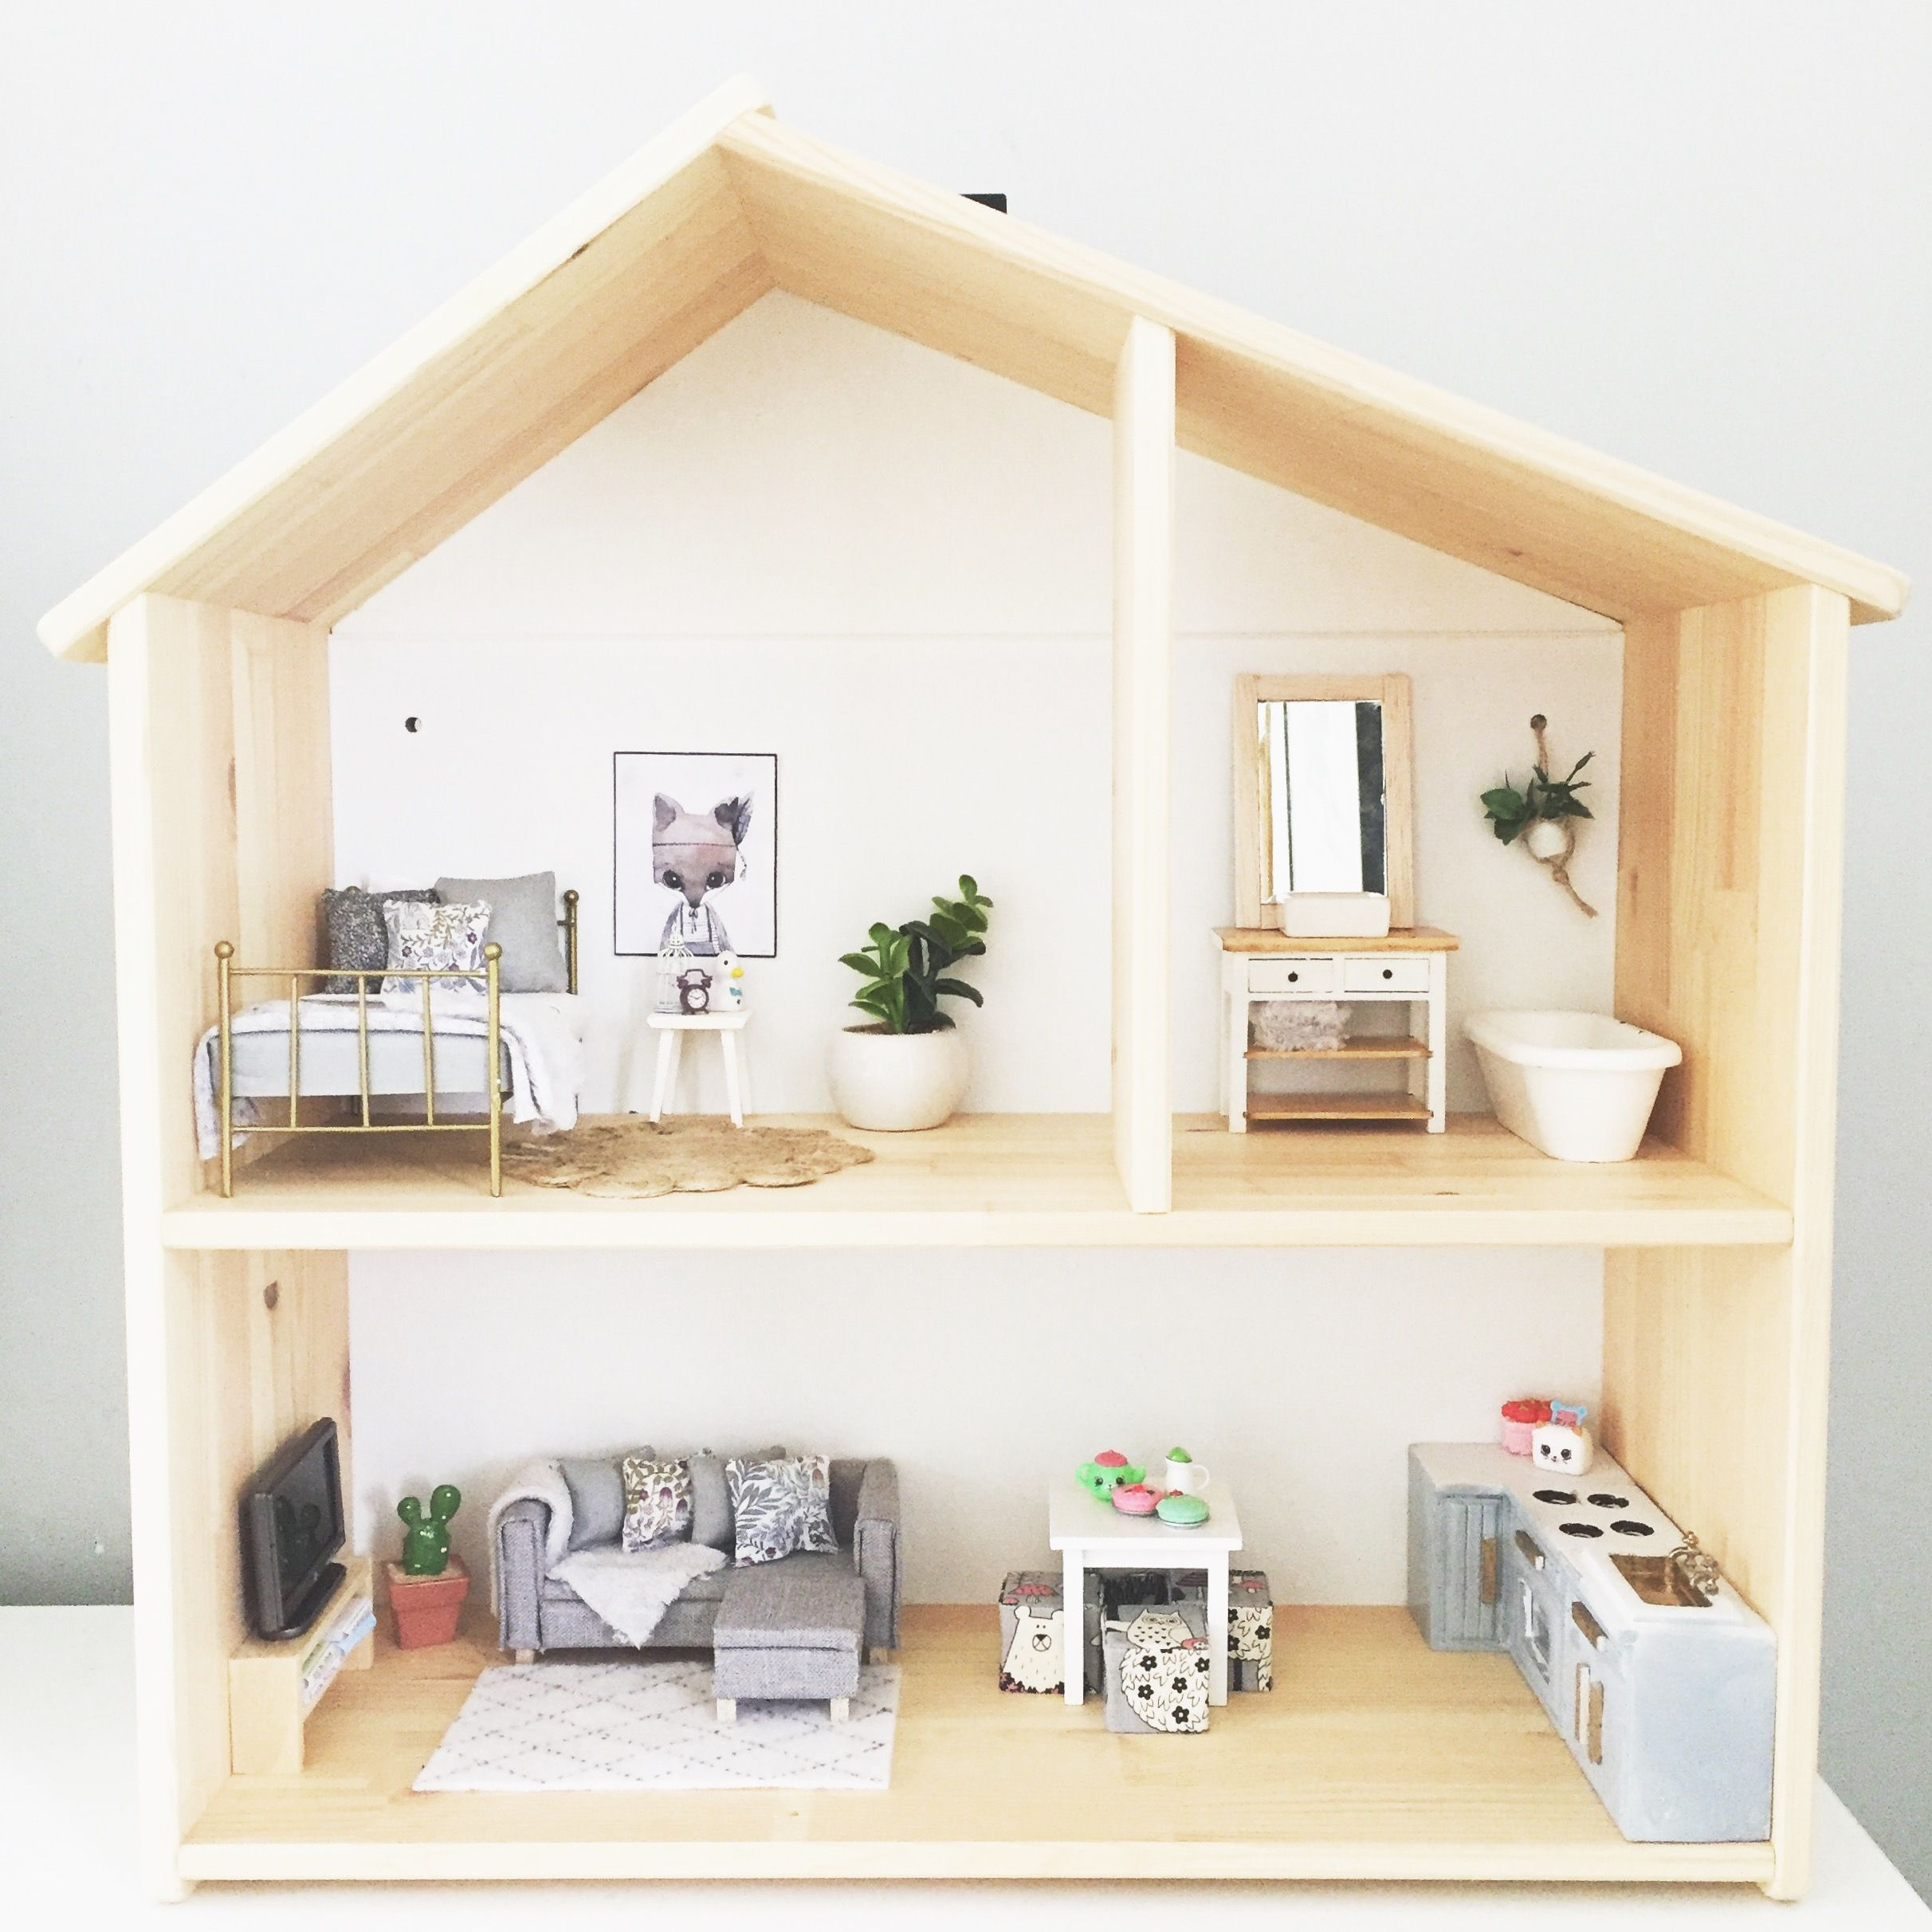 IKEA Flisat Modern Dolls House renovation in 1:12 scale